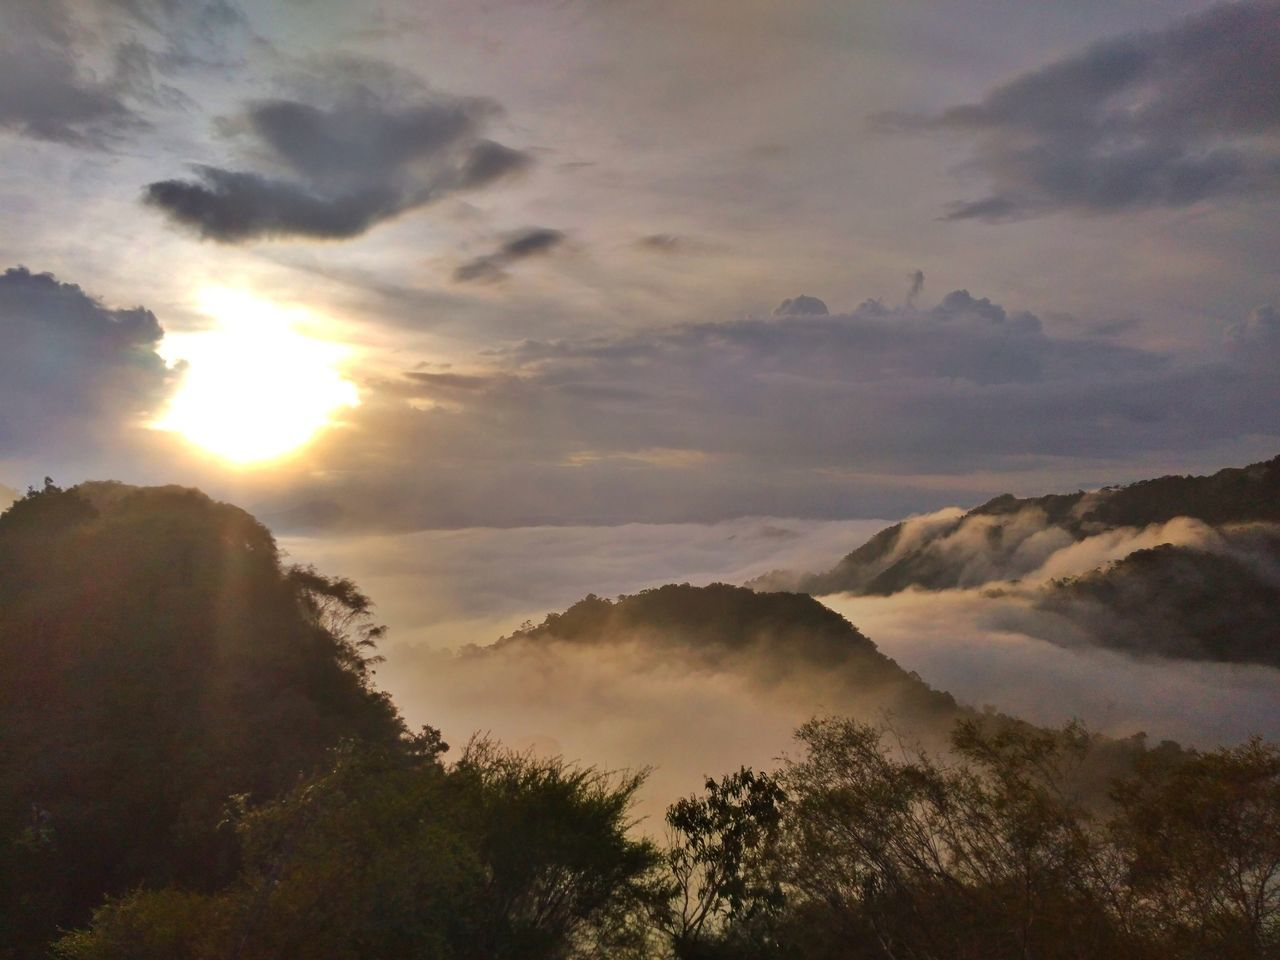 I love the sunrise 🌄 Sunbeam Cloud - Sky Nature Tree Sun Morning Gold Colored Landscape No People Fog Outdoors Sunlight Mountain Forest Beauty In Nature Sky Day Scenics Sunrise Gunungpulut Perak Darul Ridzuan, Malaysia